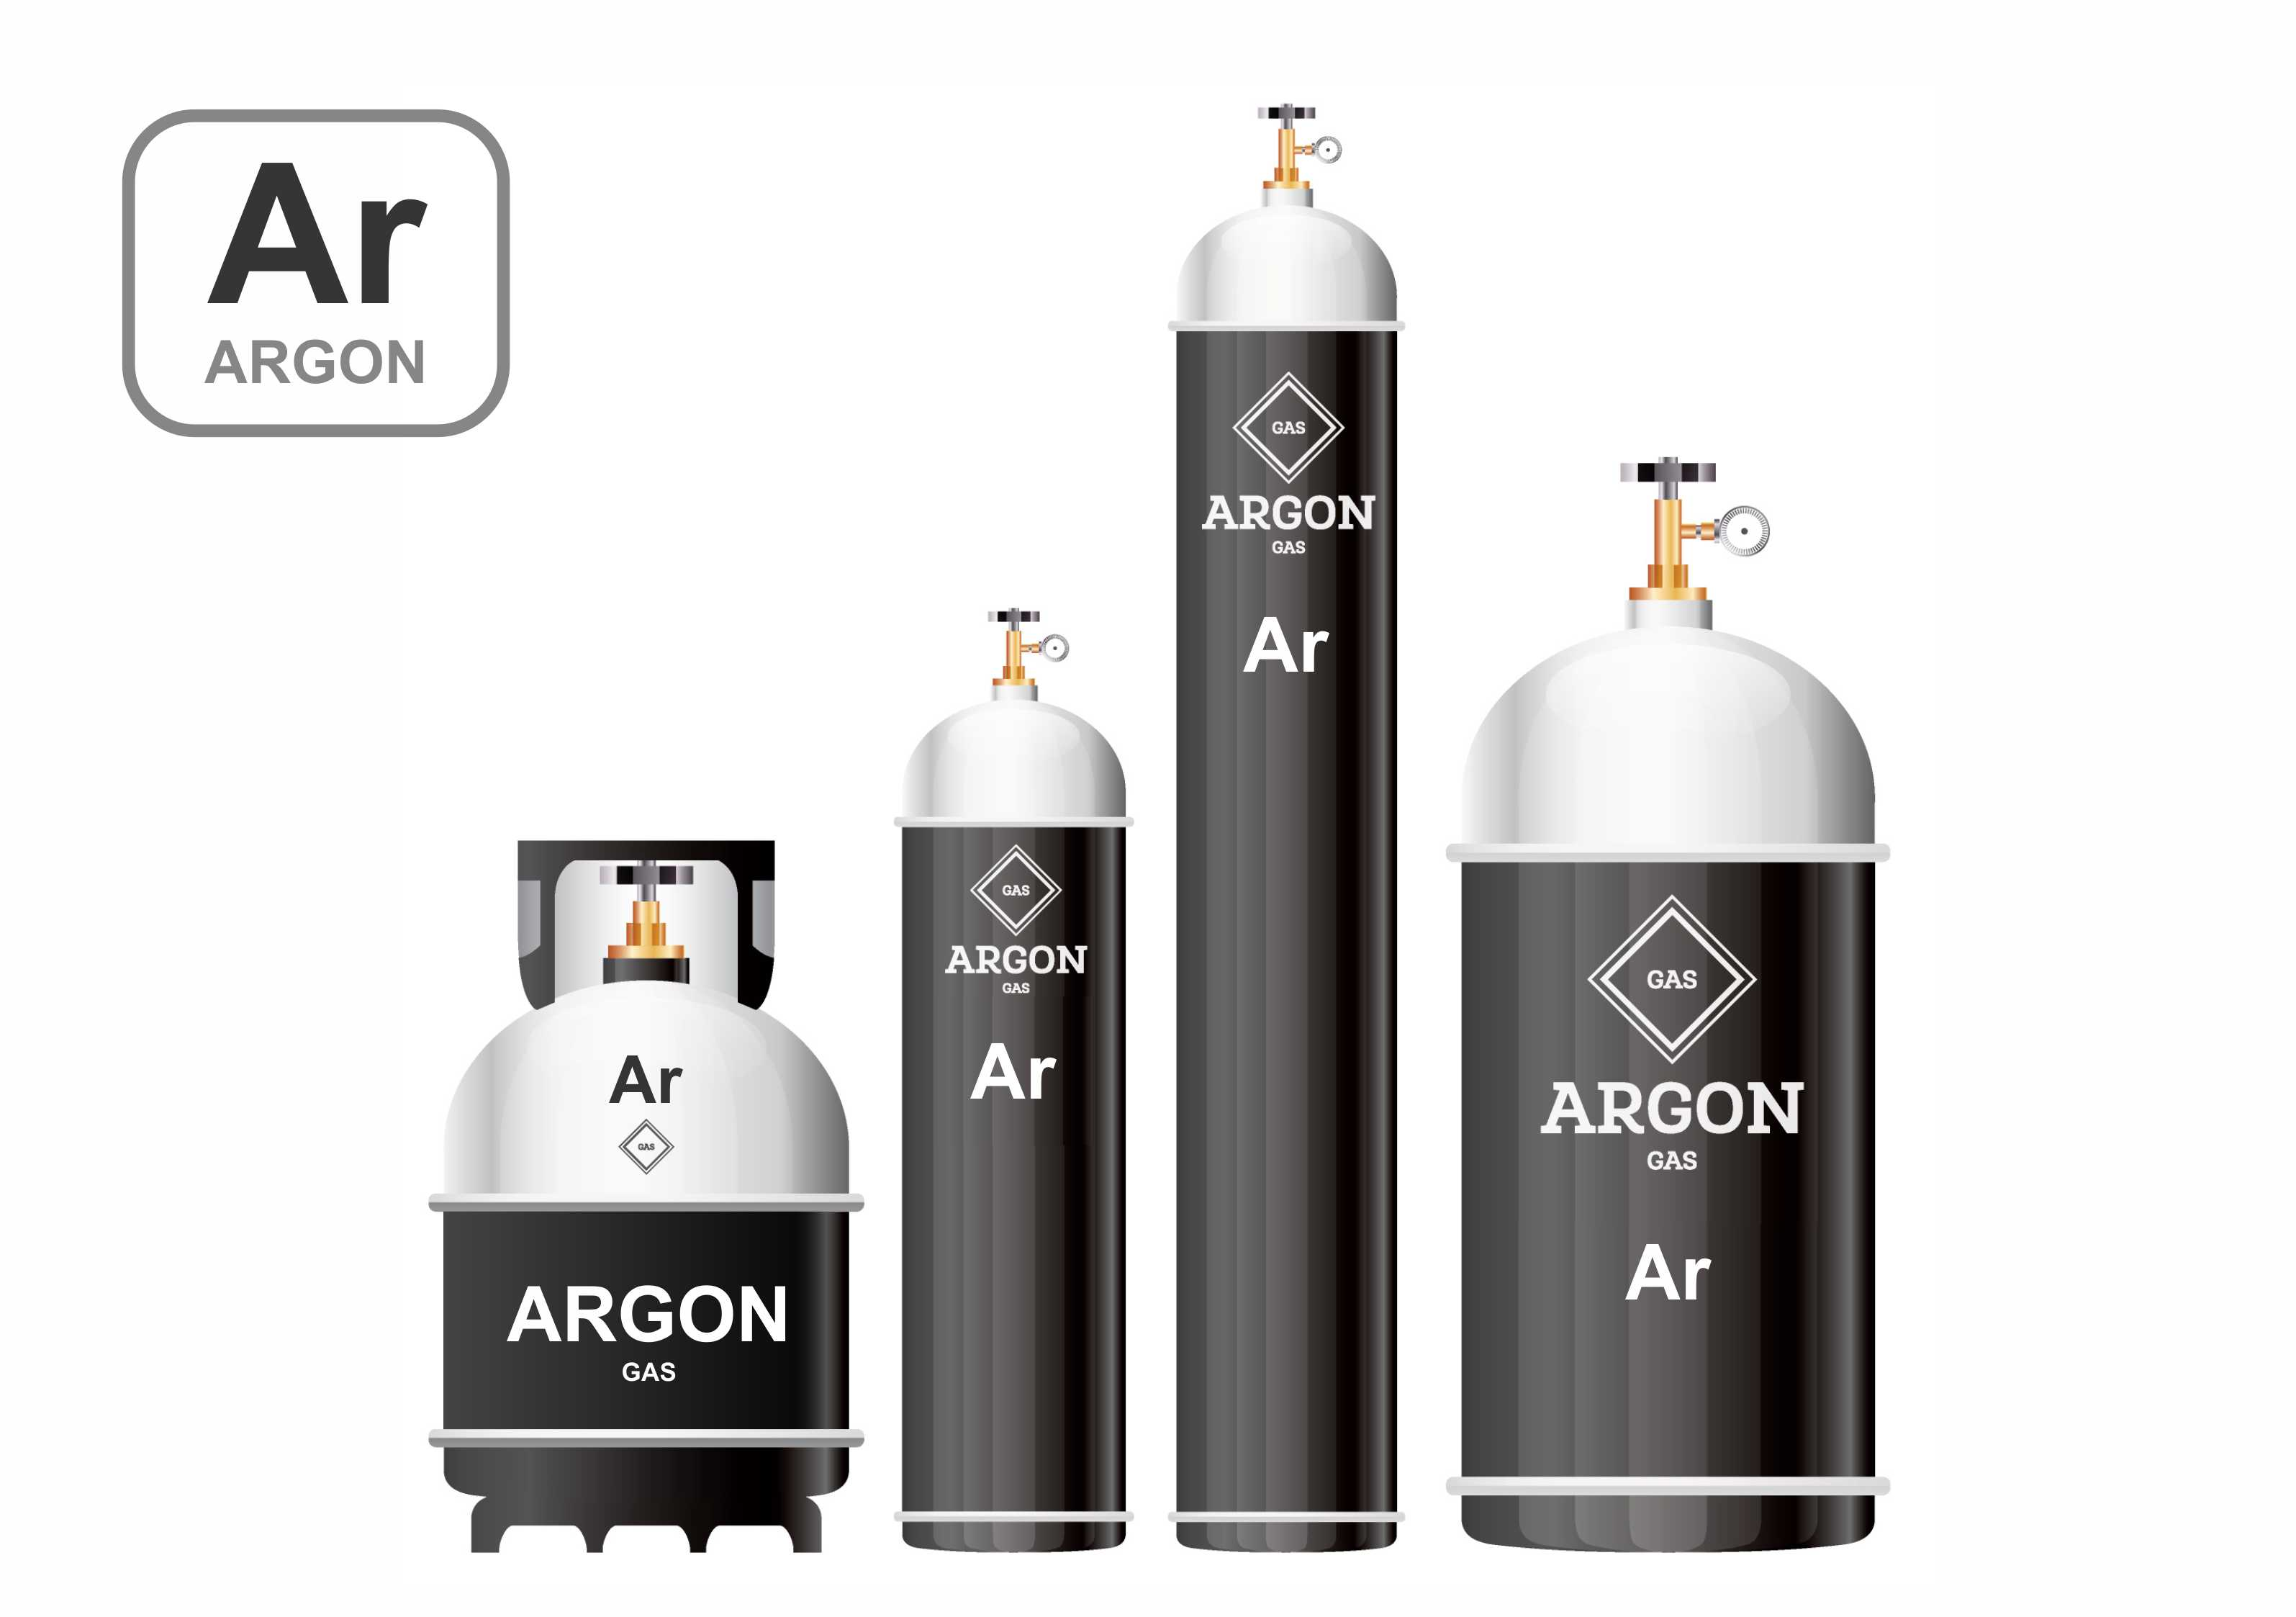 Liquid and gaseous argon